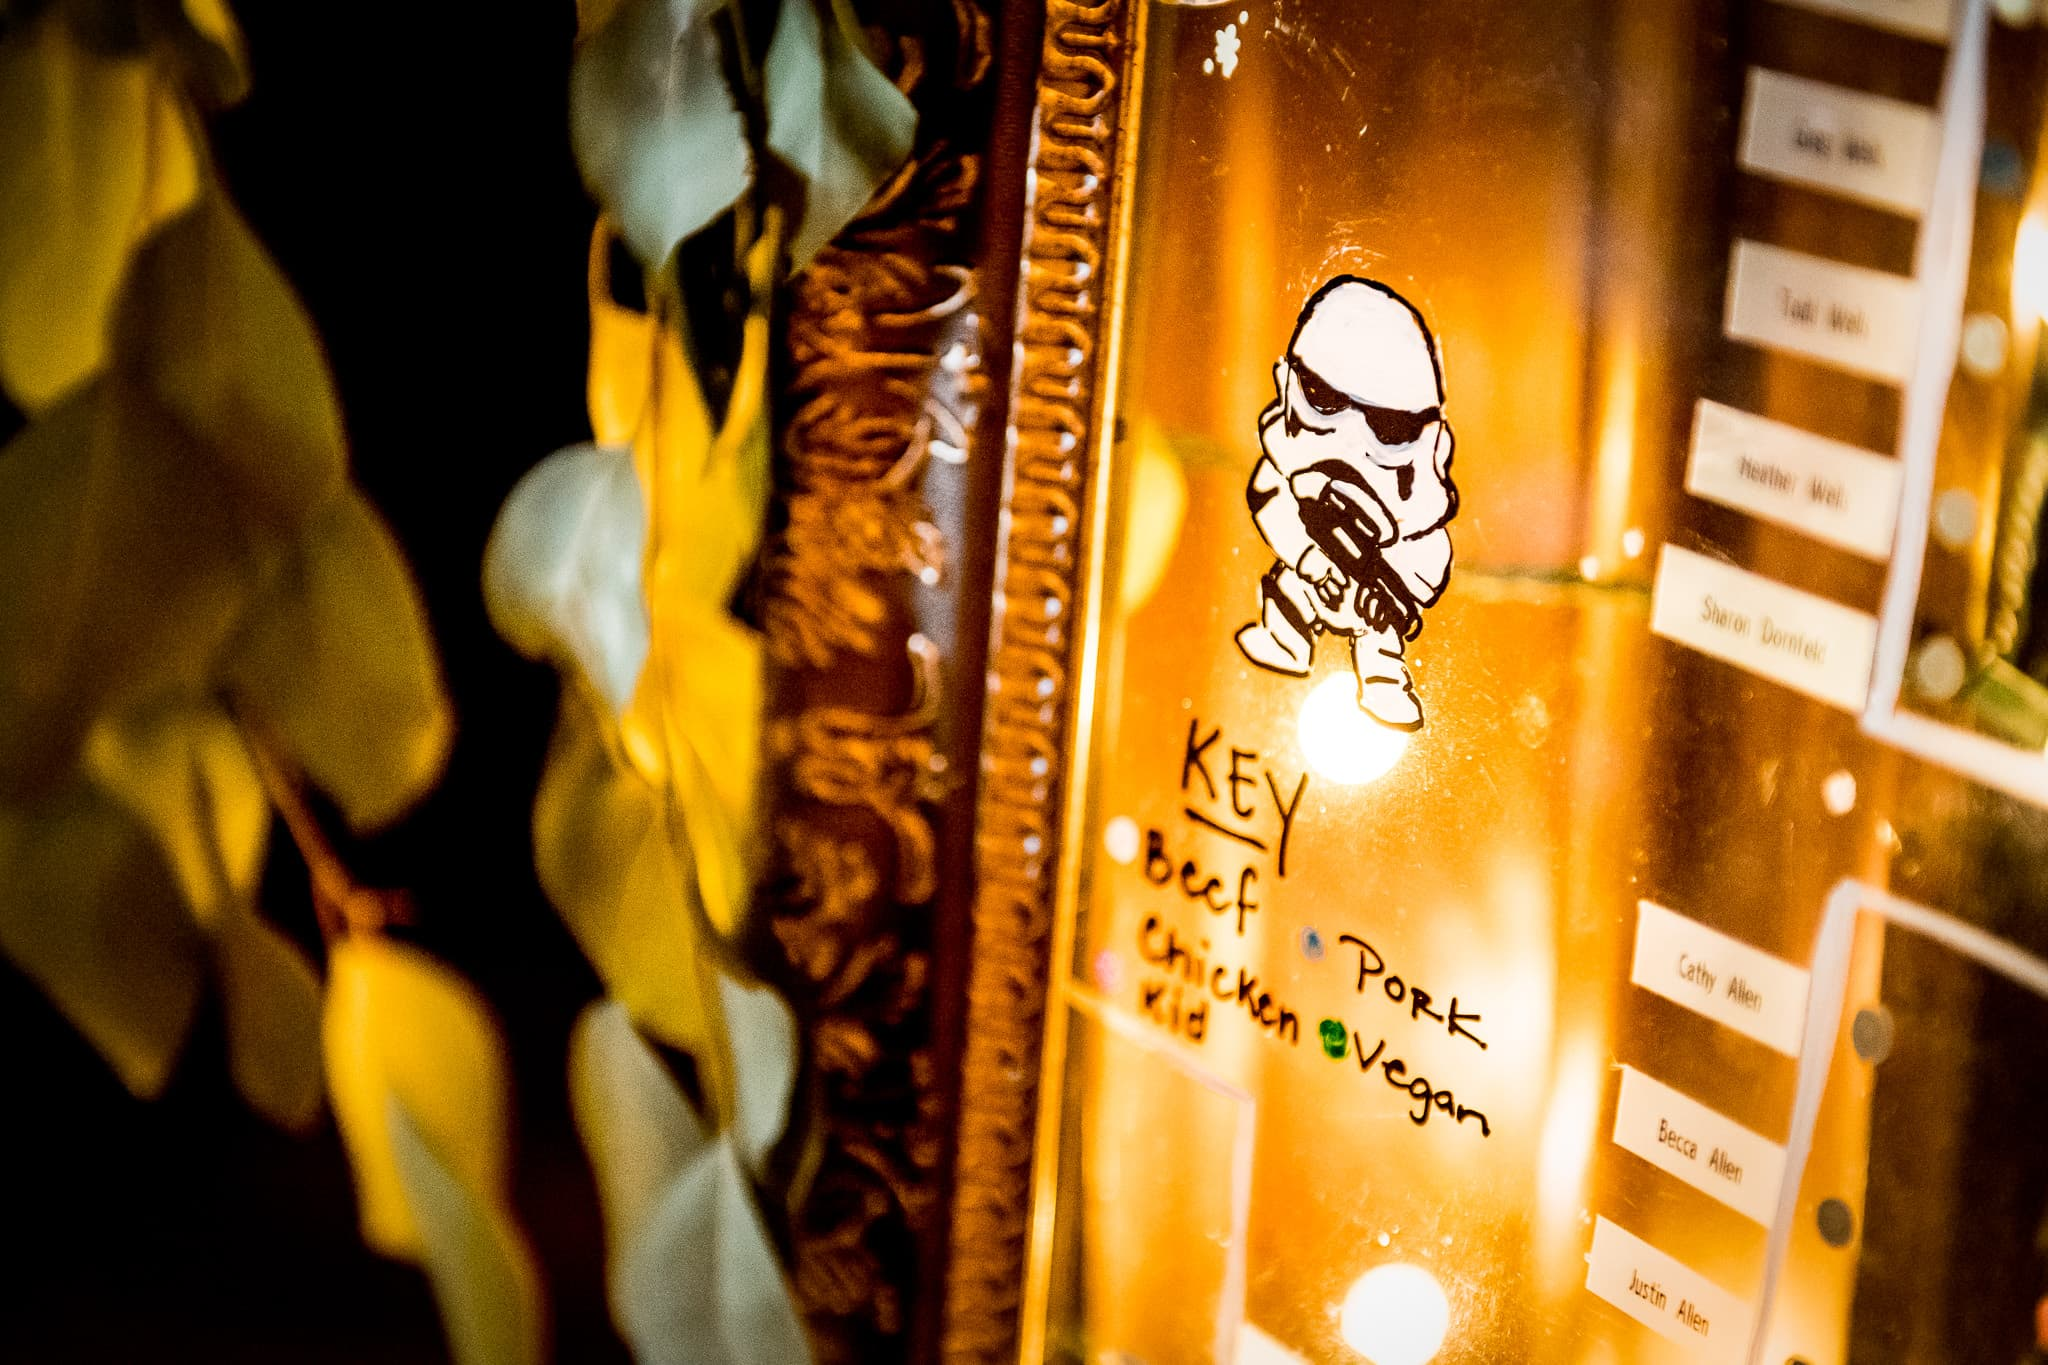 Aster Cafe Star Wars Theme Details 10